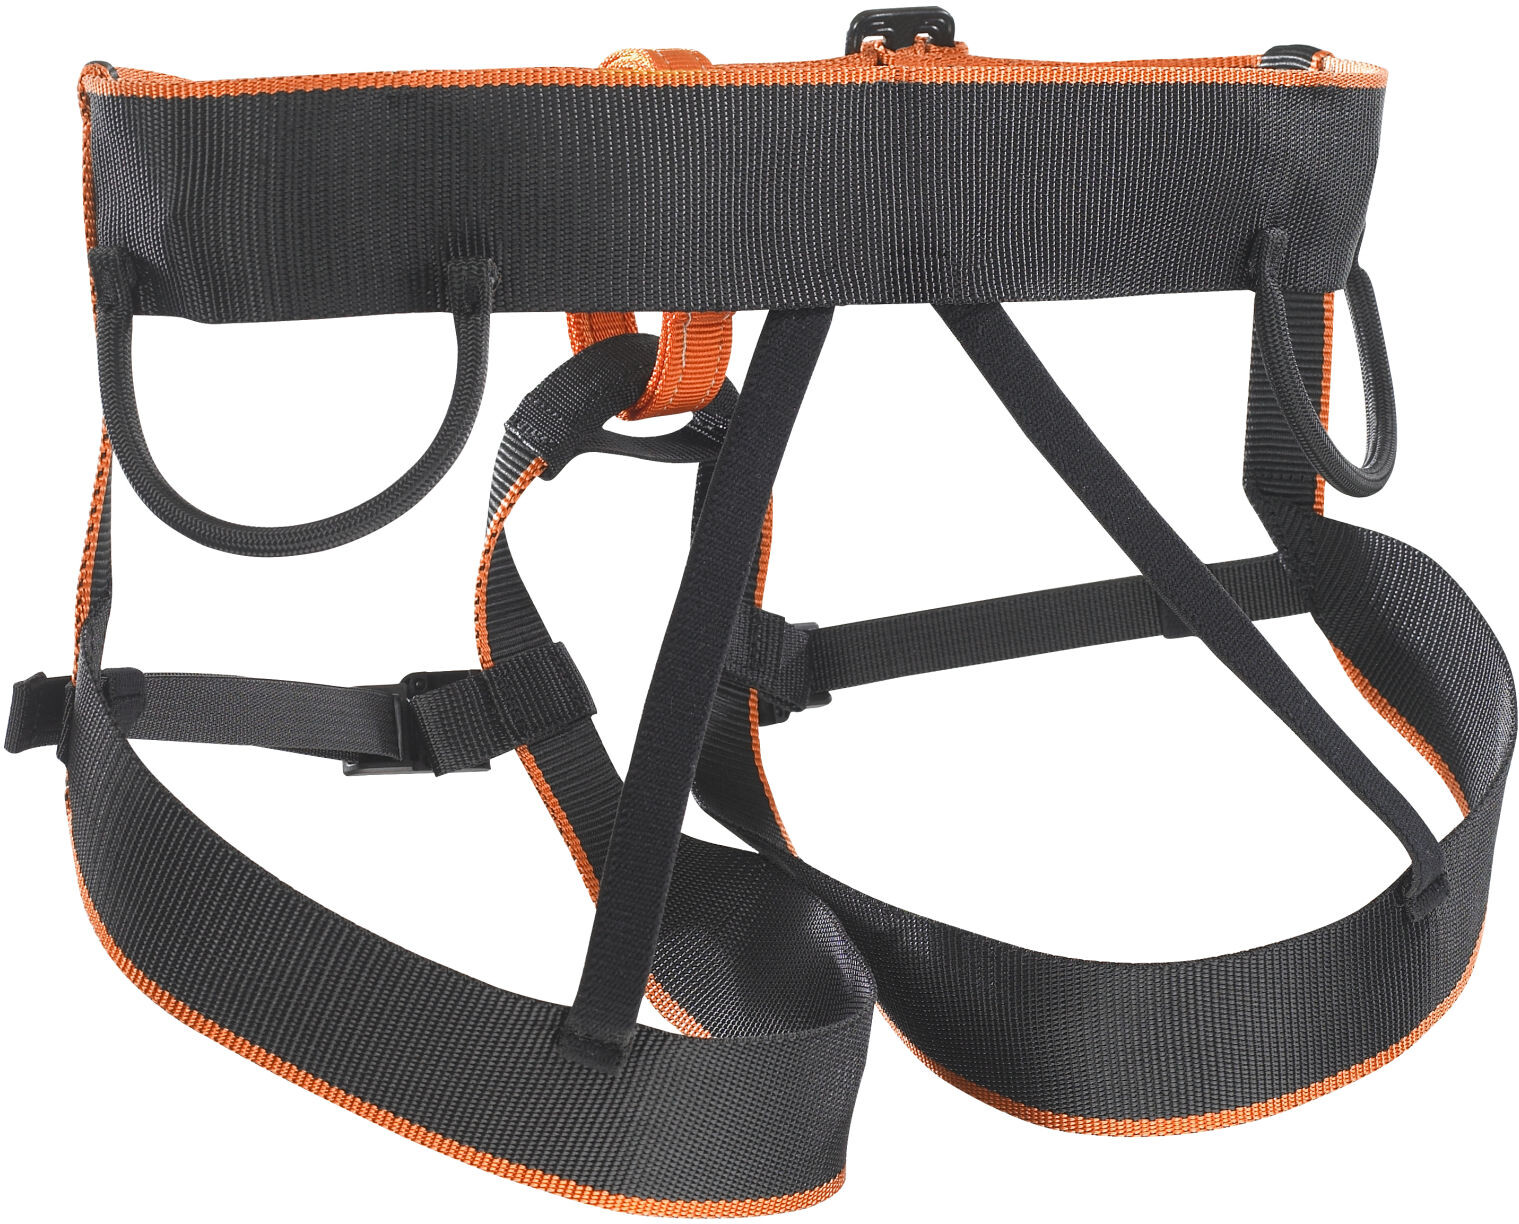 Skylotec Klettergurt : Skylotec pyrit harness black orange campz